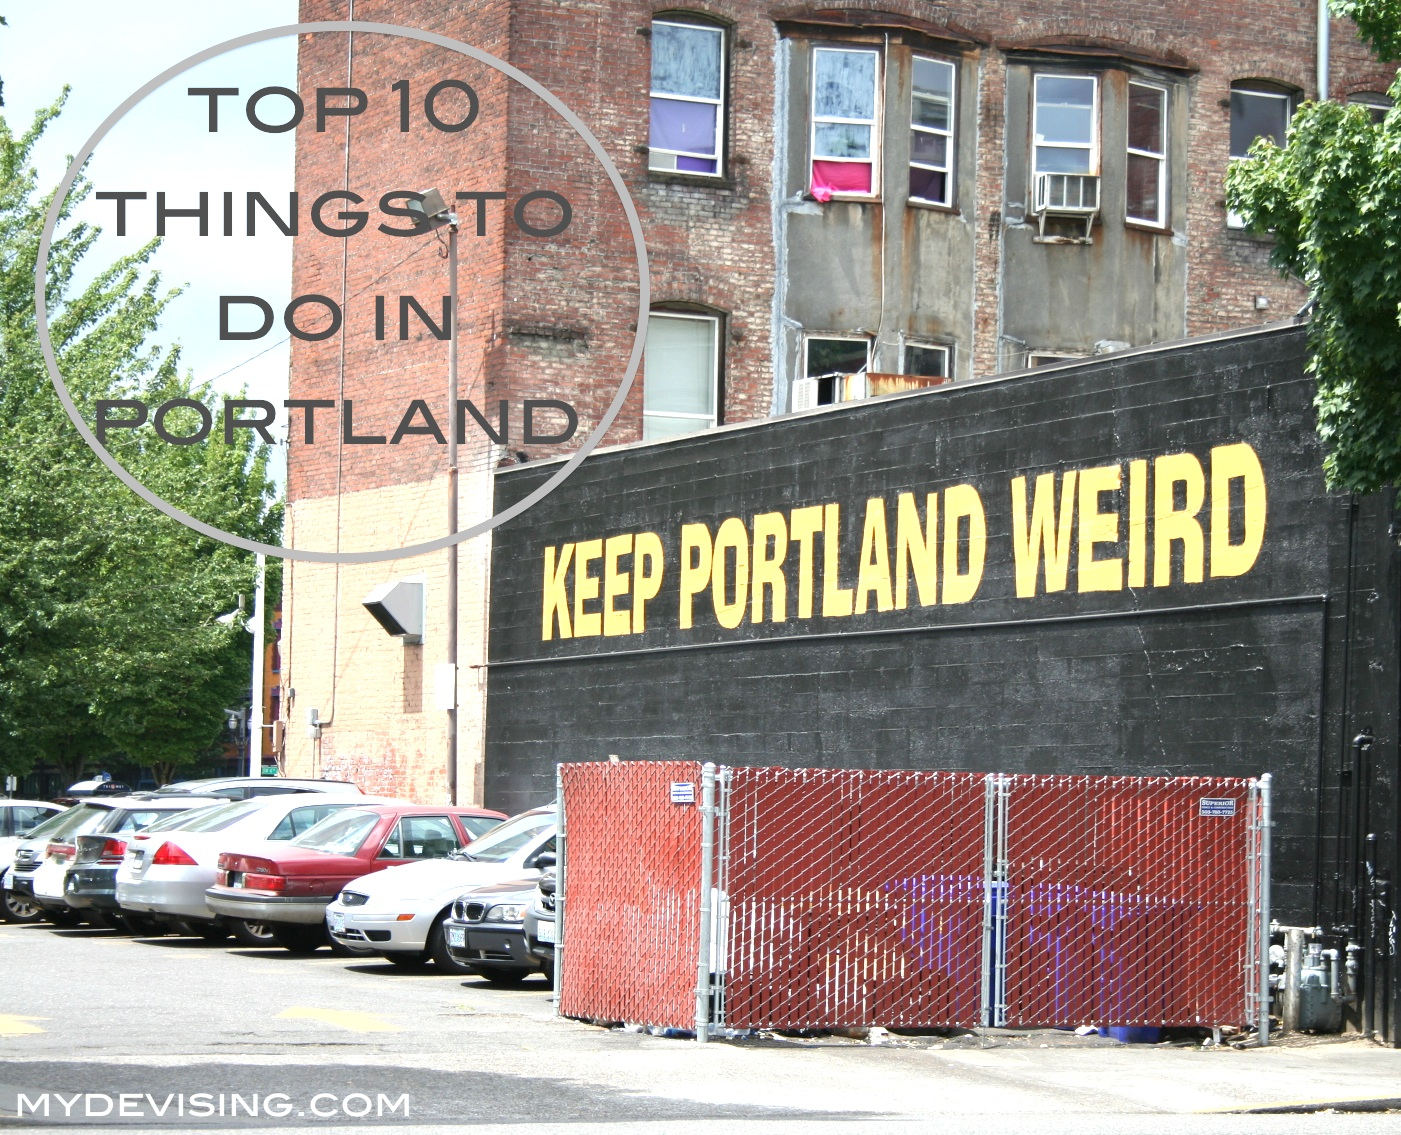 MY DEVISING Top Things To Do In Portland - 10 things to see and do in seattle